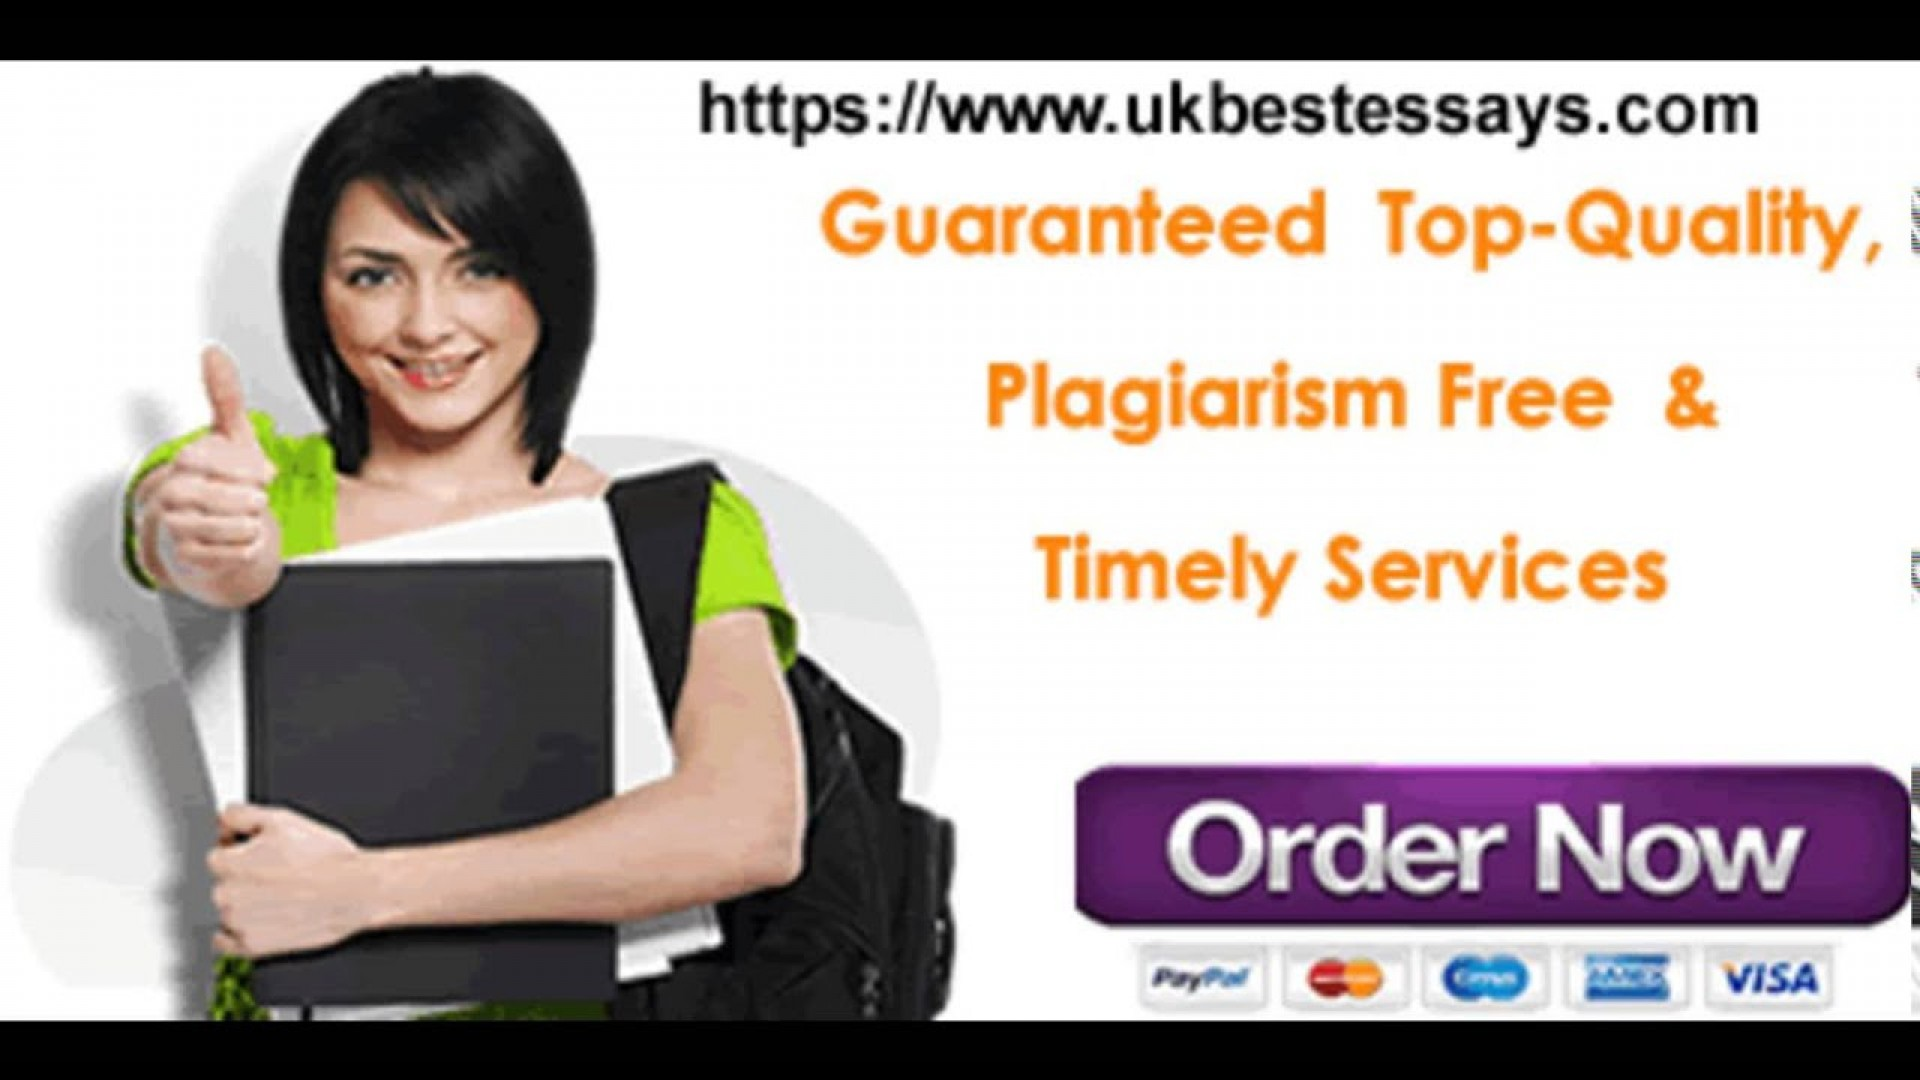 011 Essay Example Writing Service Best Essays Uk Trusted Custom Safe Wondrous Services Reviews Cheap Pro 1920